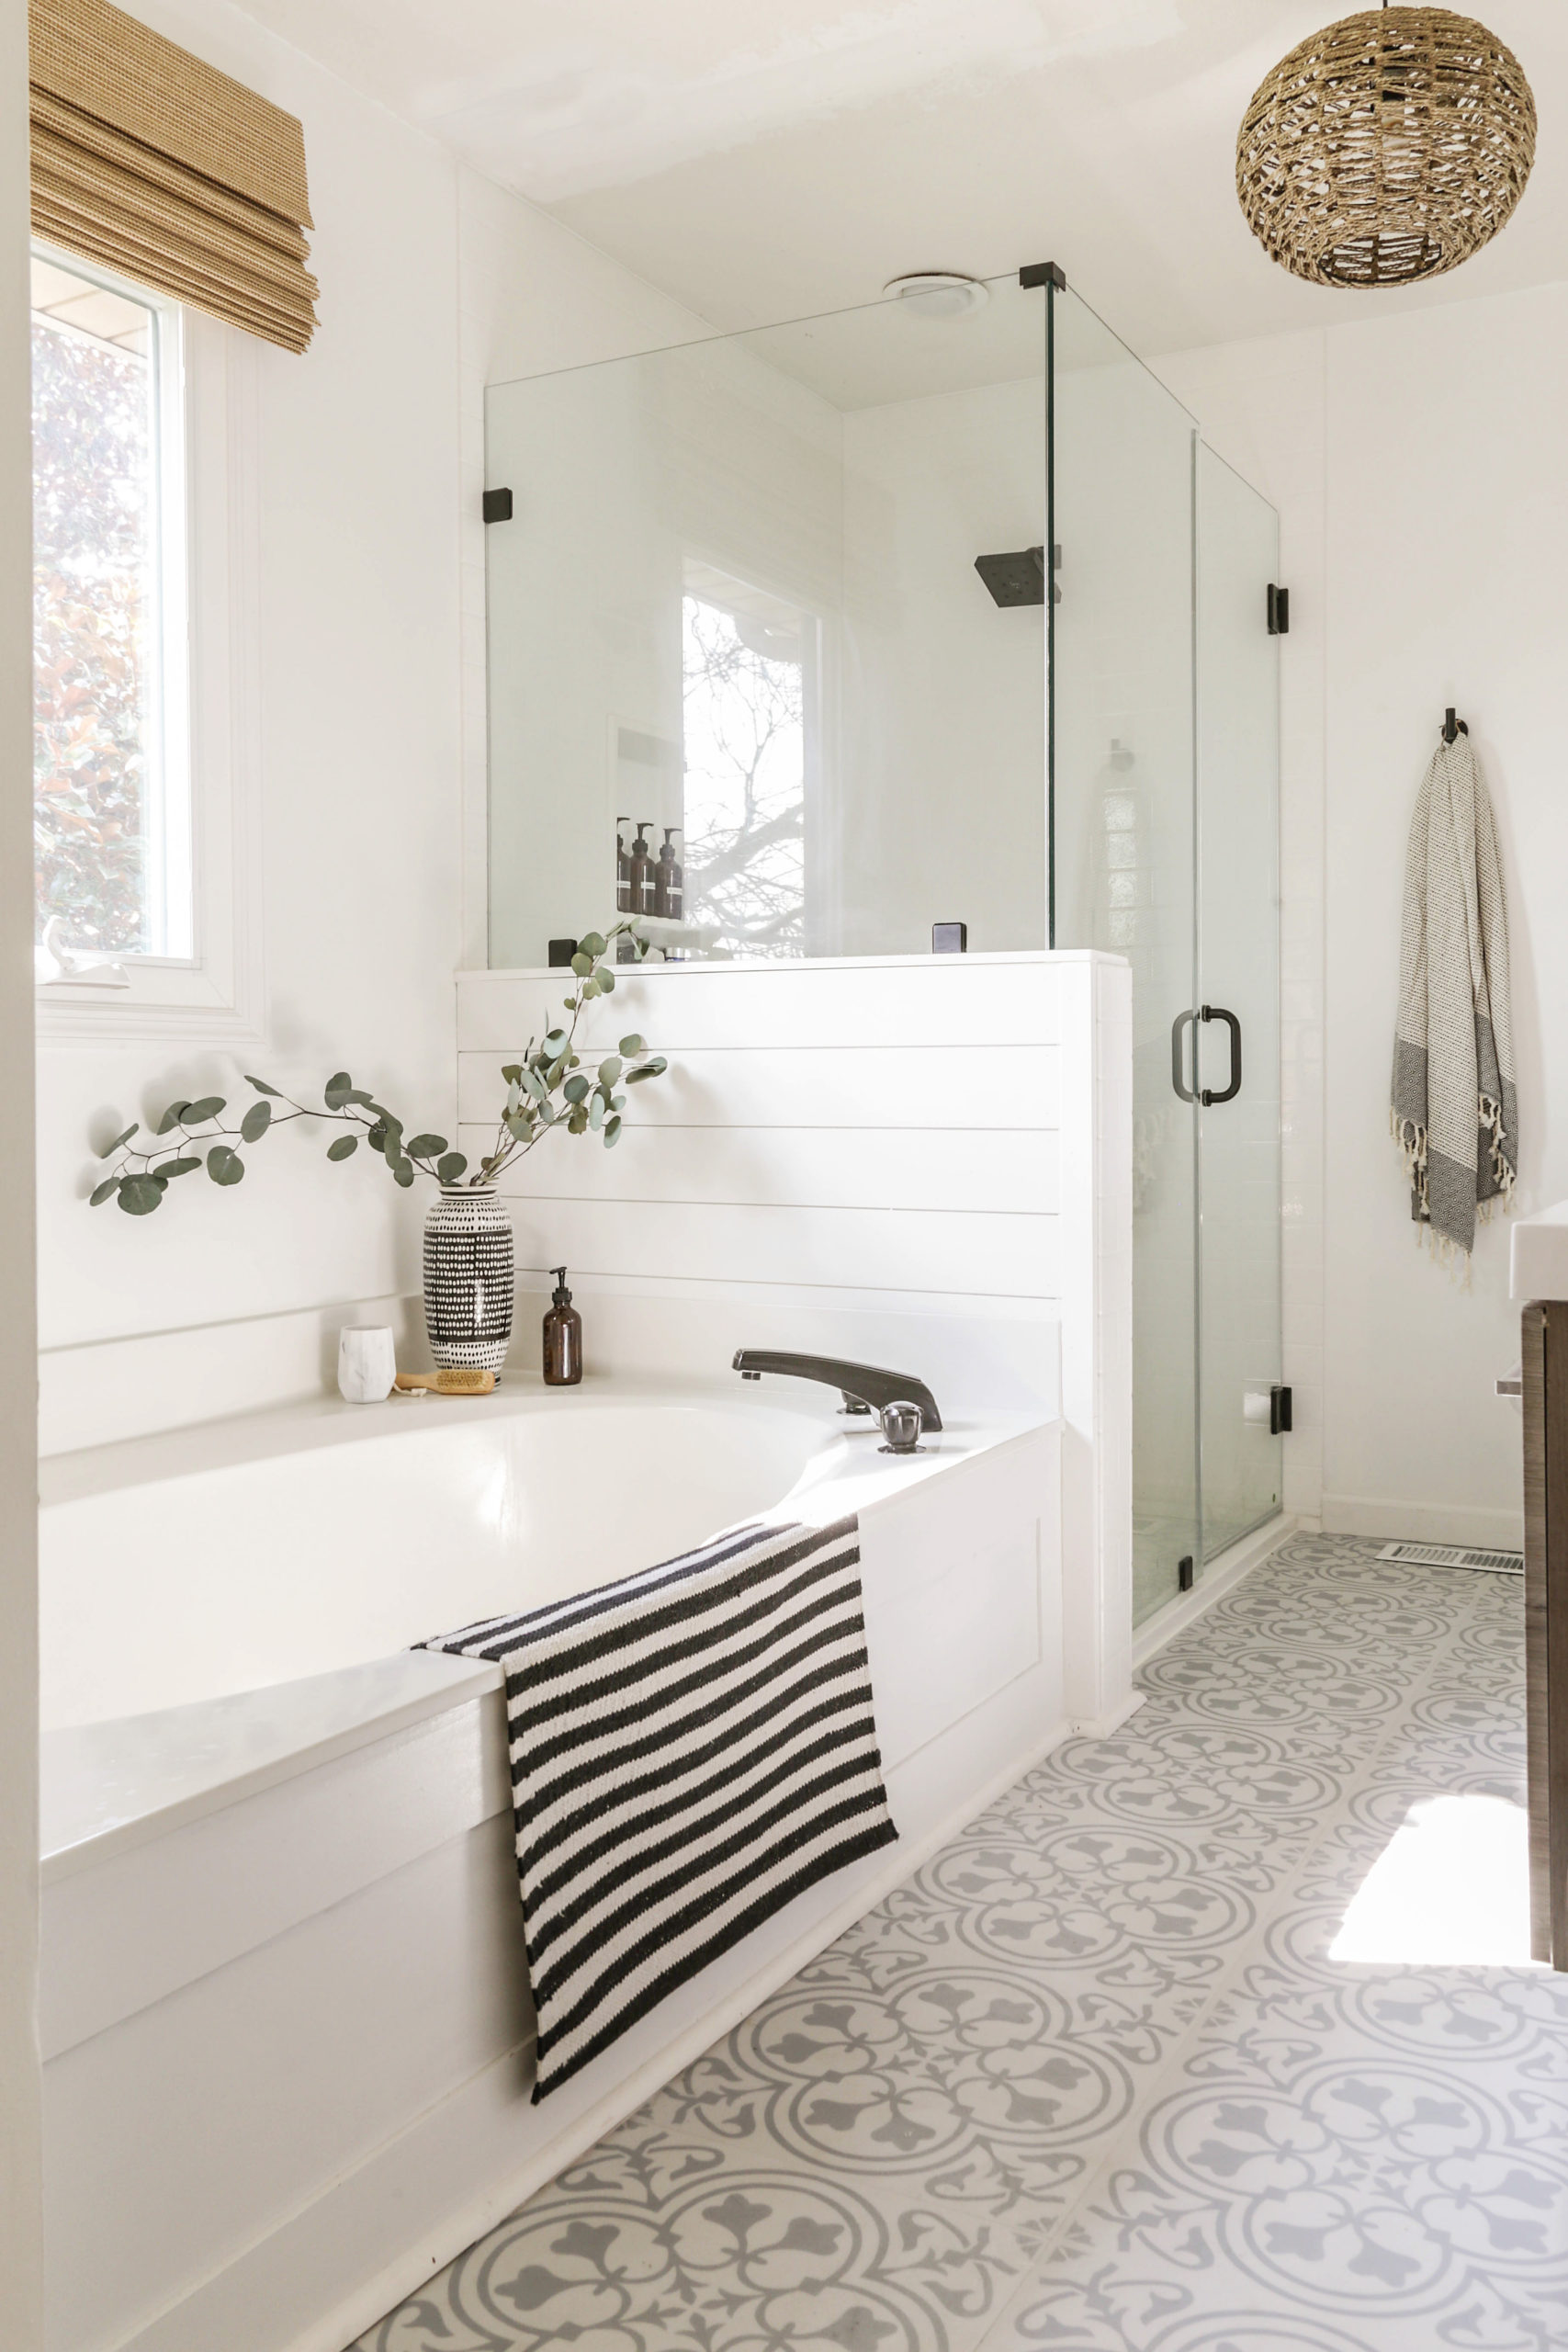 Modern Farmhouse Before and After Home Tour - Designing ... on Modern Farmhouse Shower  id=76683